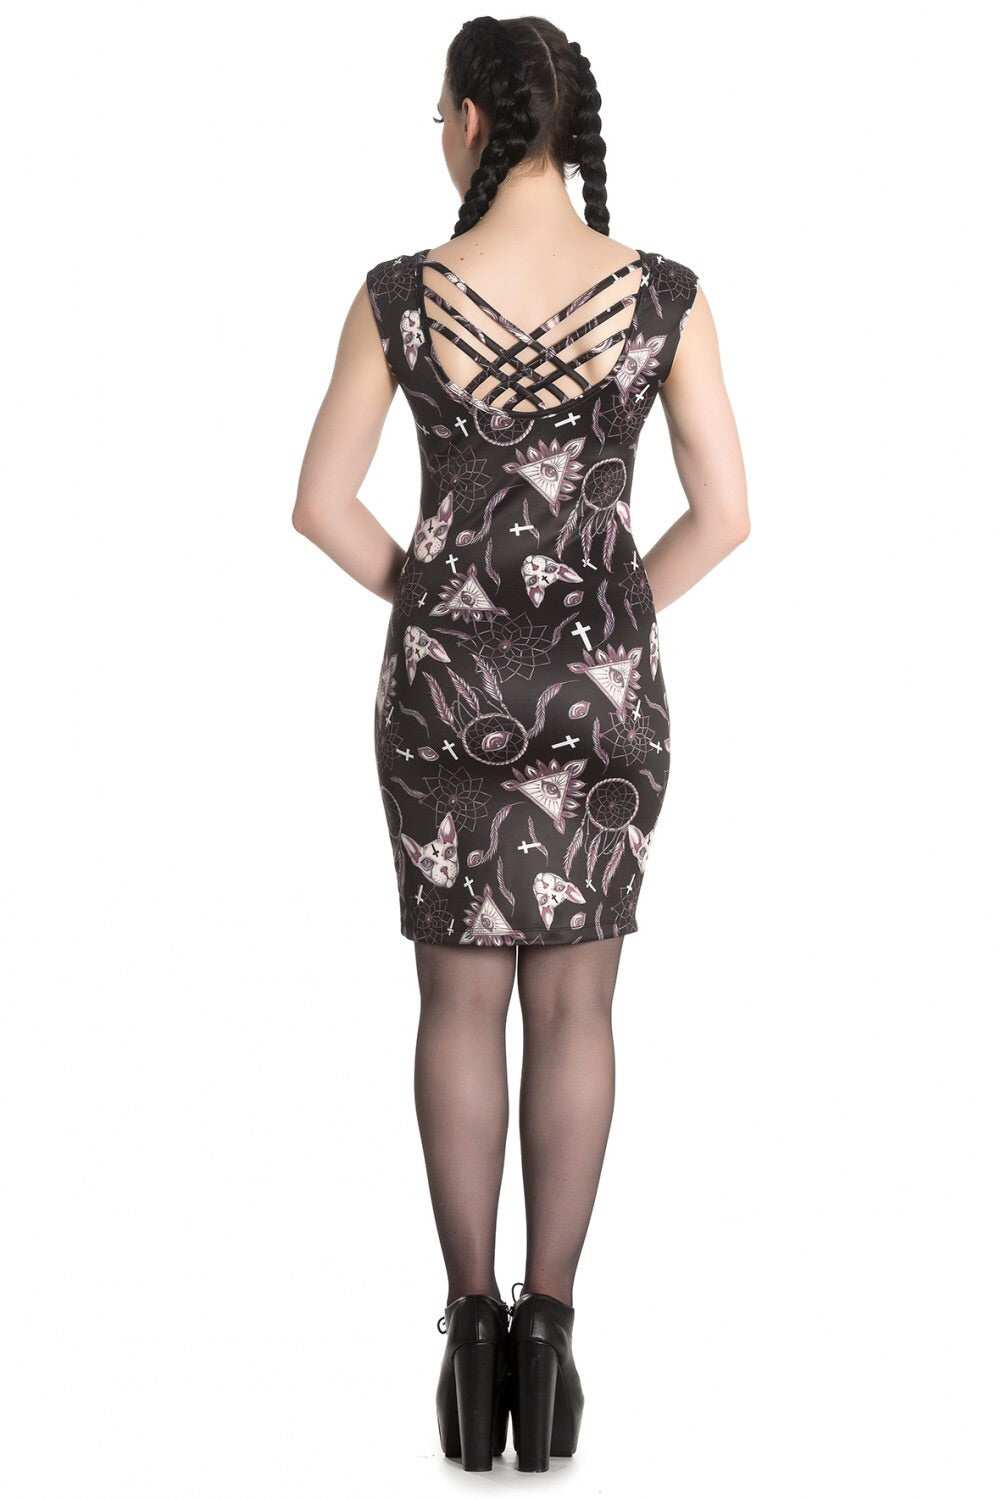 Arcane Occult Kitty Stretch Pencil Dress